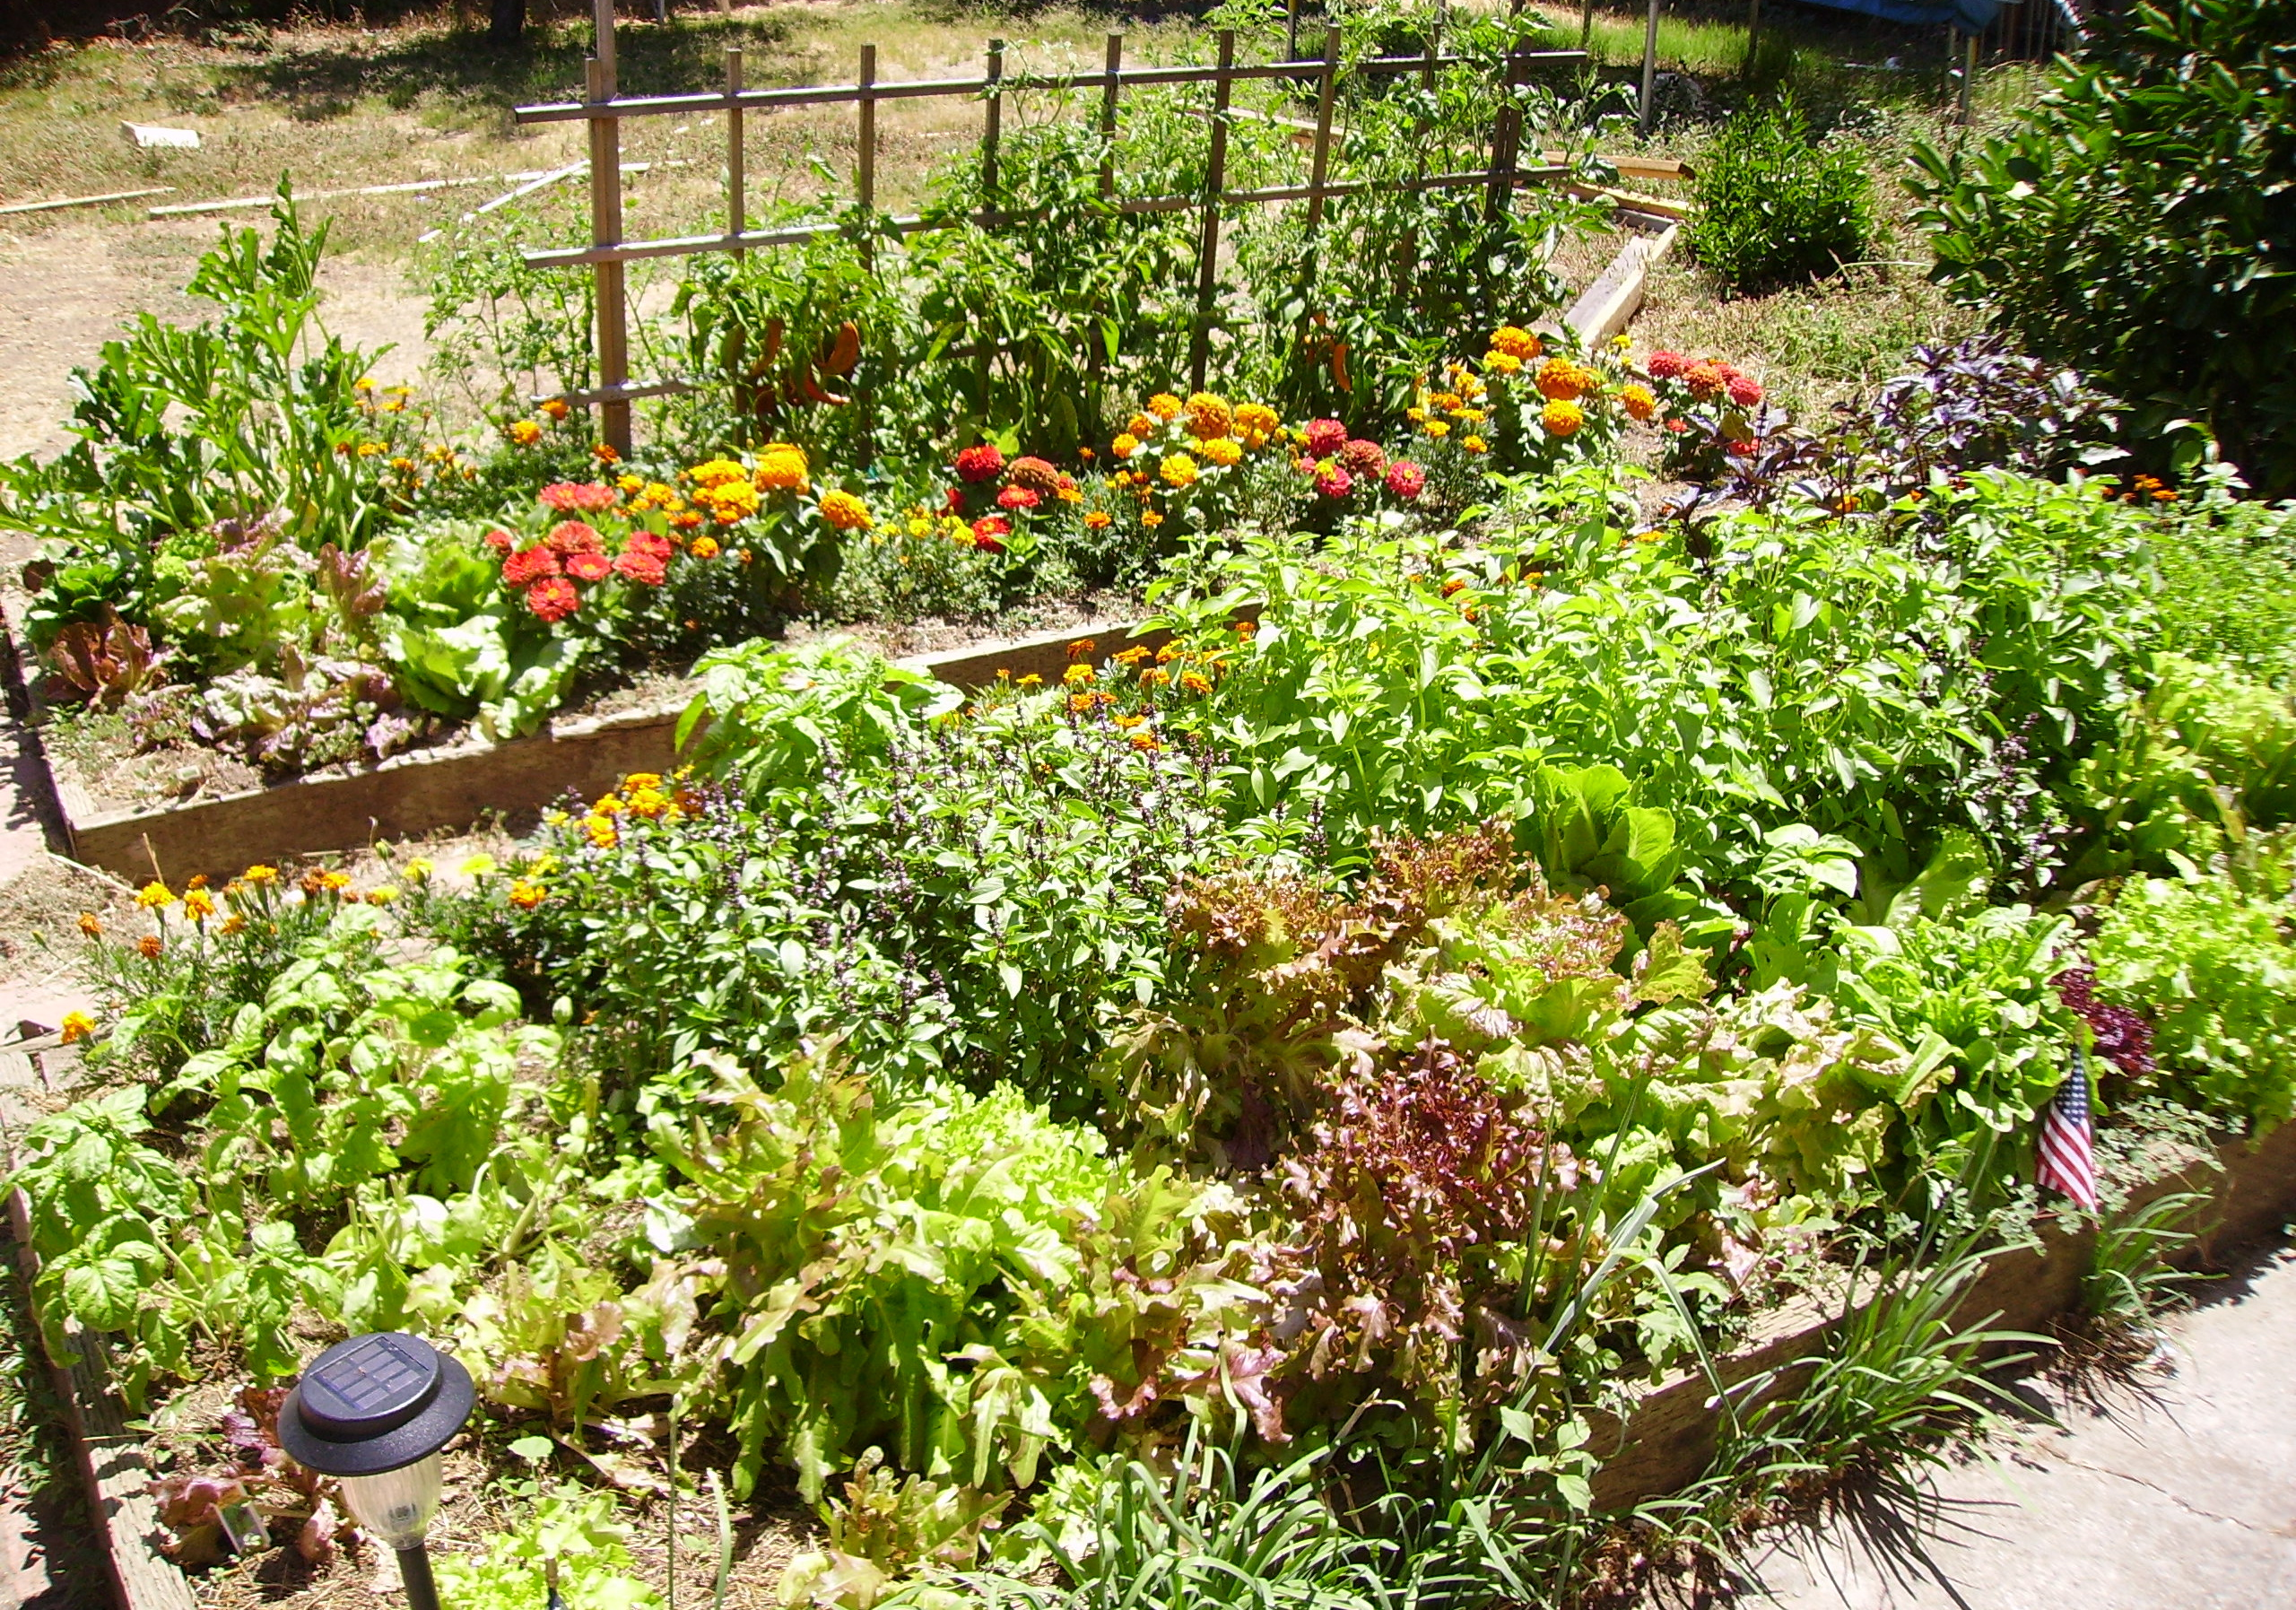 Edible gardens grow your own veg sustainable green garden for Vegetable garden